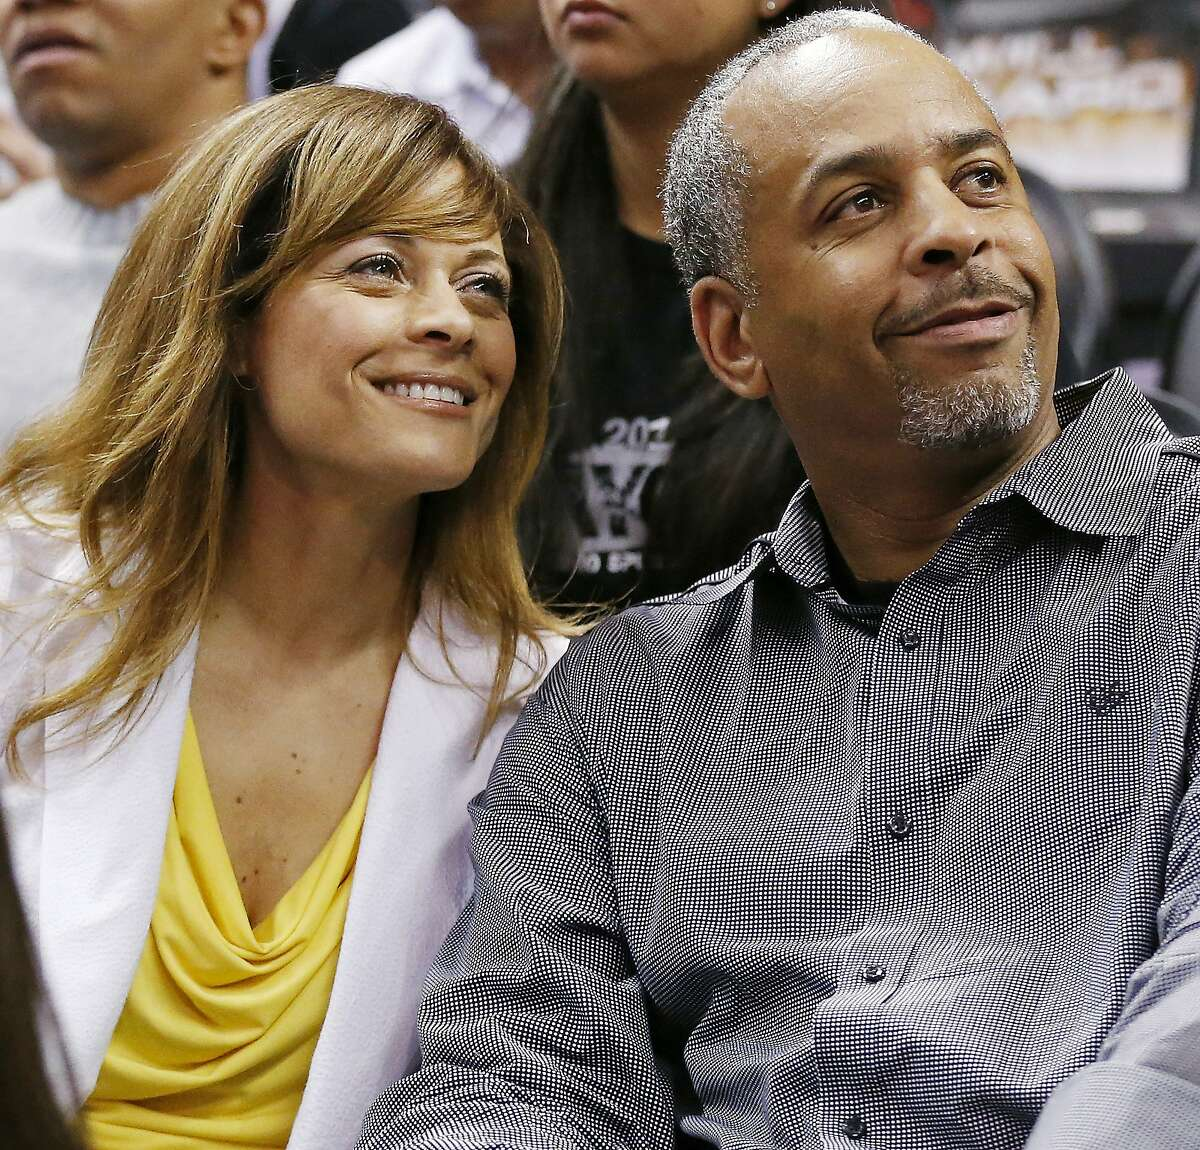 Stephen Curry's parents Sonya and Dell Curry pose for a photos during Game 2 of the NBA Western Conference semifinals against the San Antonio Spurs Wednesday May 8, 2013 at the AT&T Center.